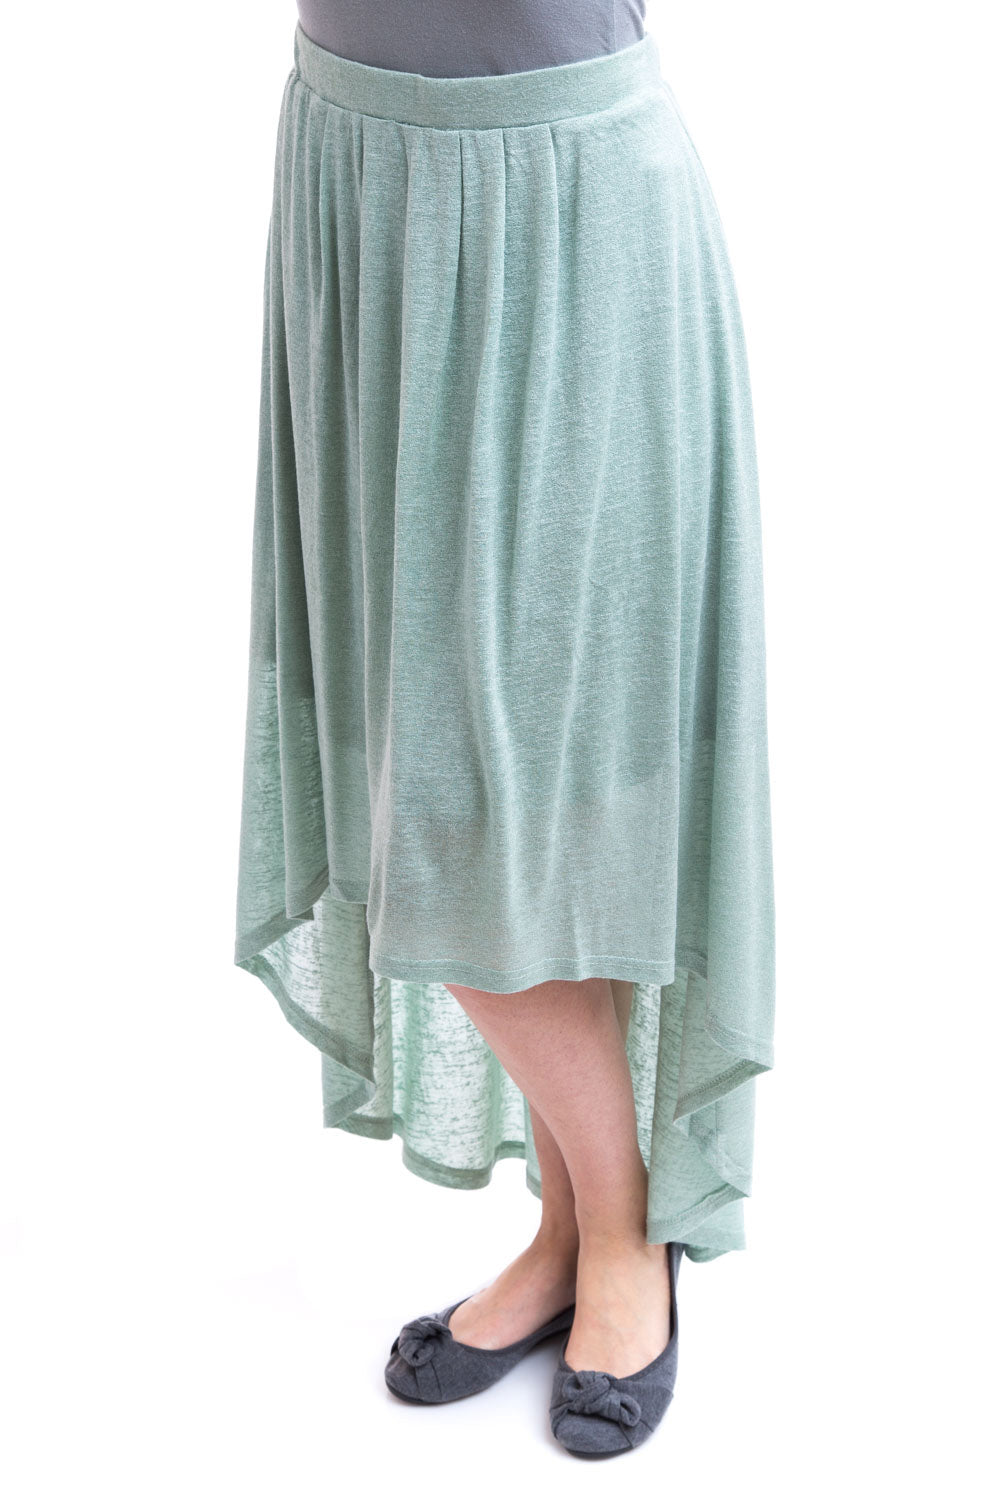 Type 2 Ascending Skirt in Misty Mint